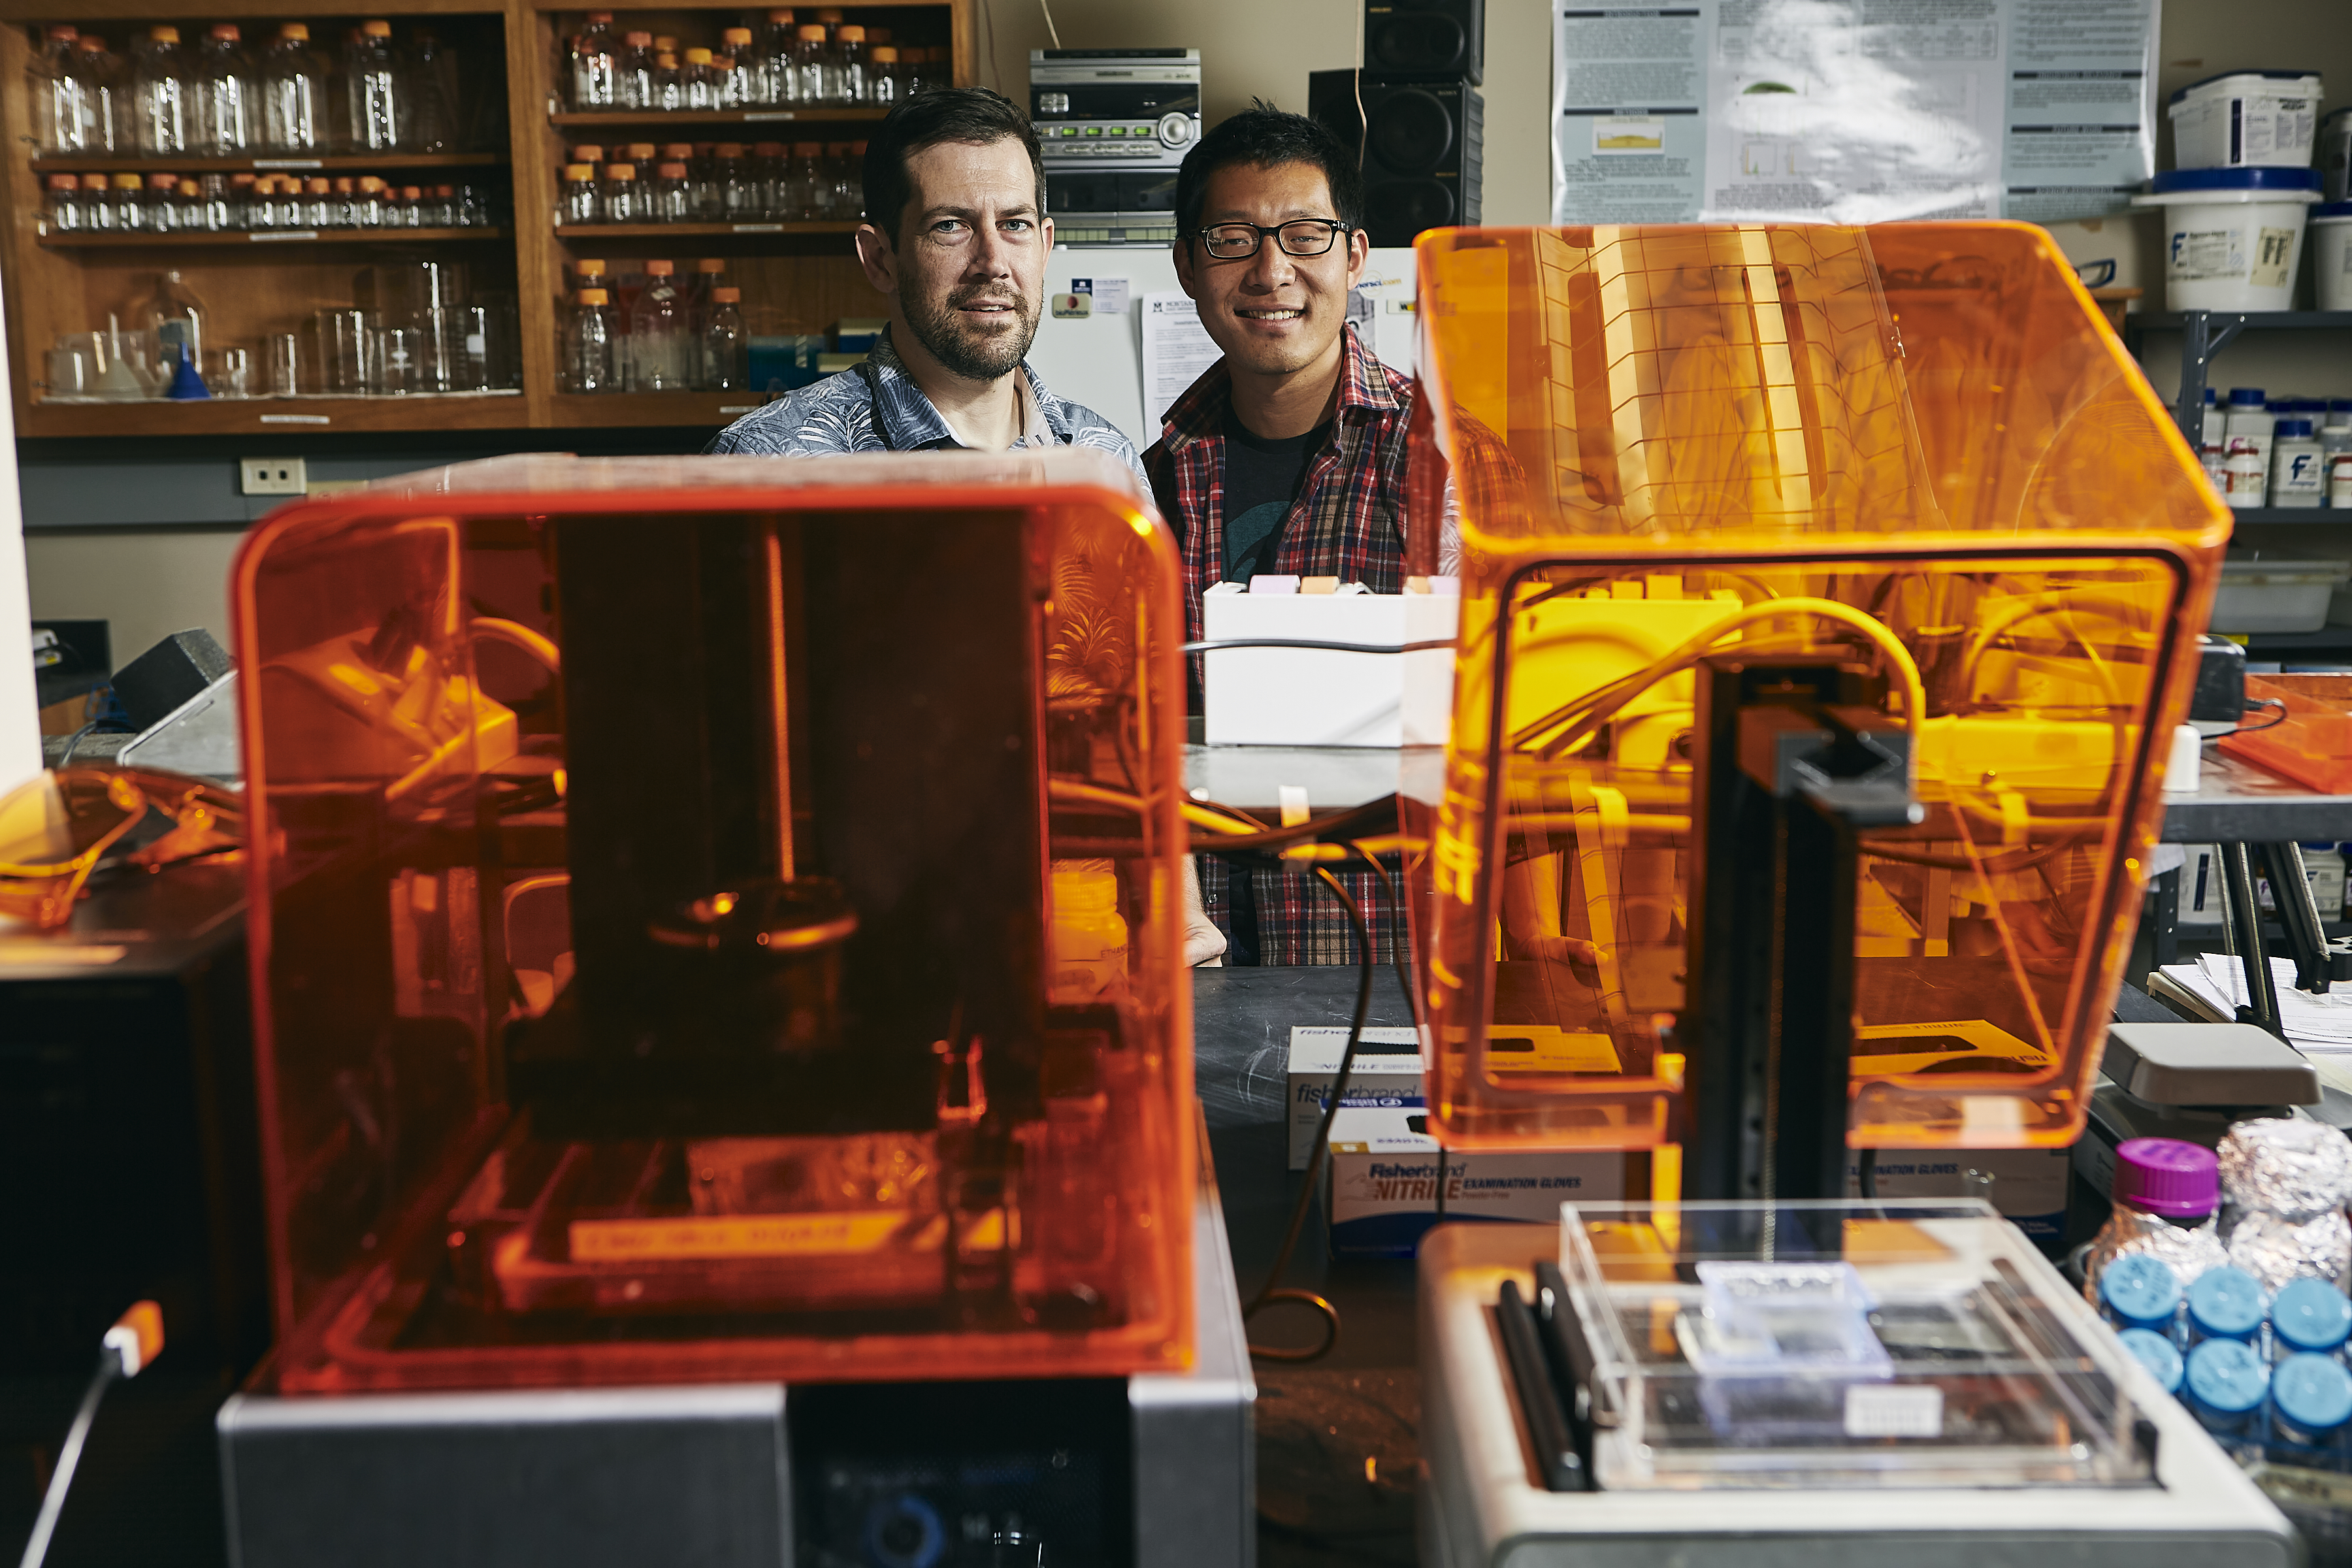 James Wilking, left, and doctoral student Jason Zeng, shown with 3-D printers they will use to study how microbial communities interact in biofilms.